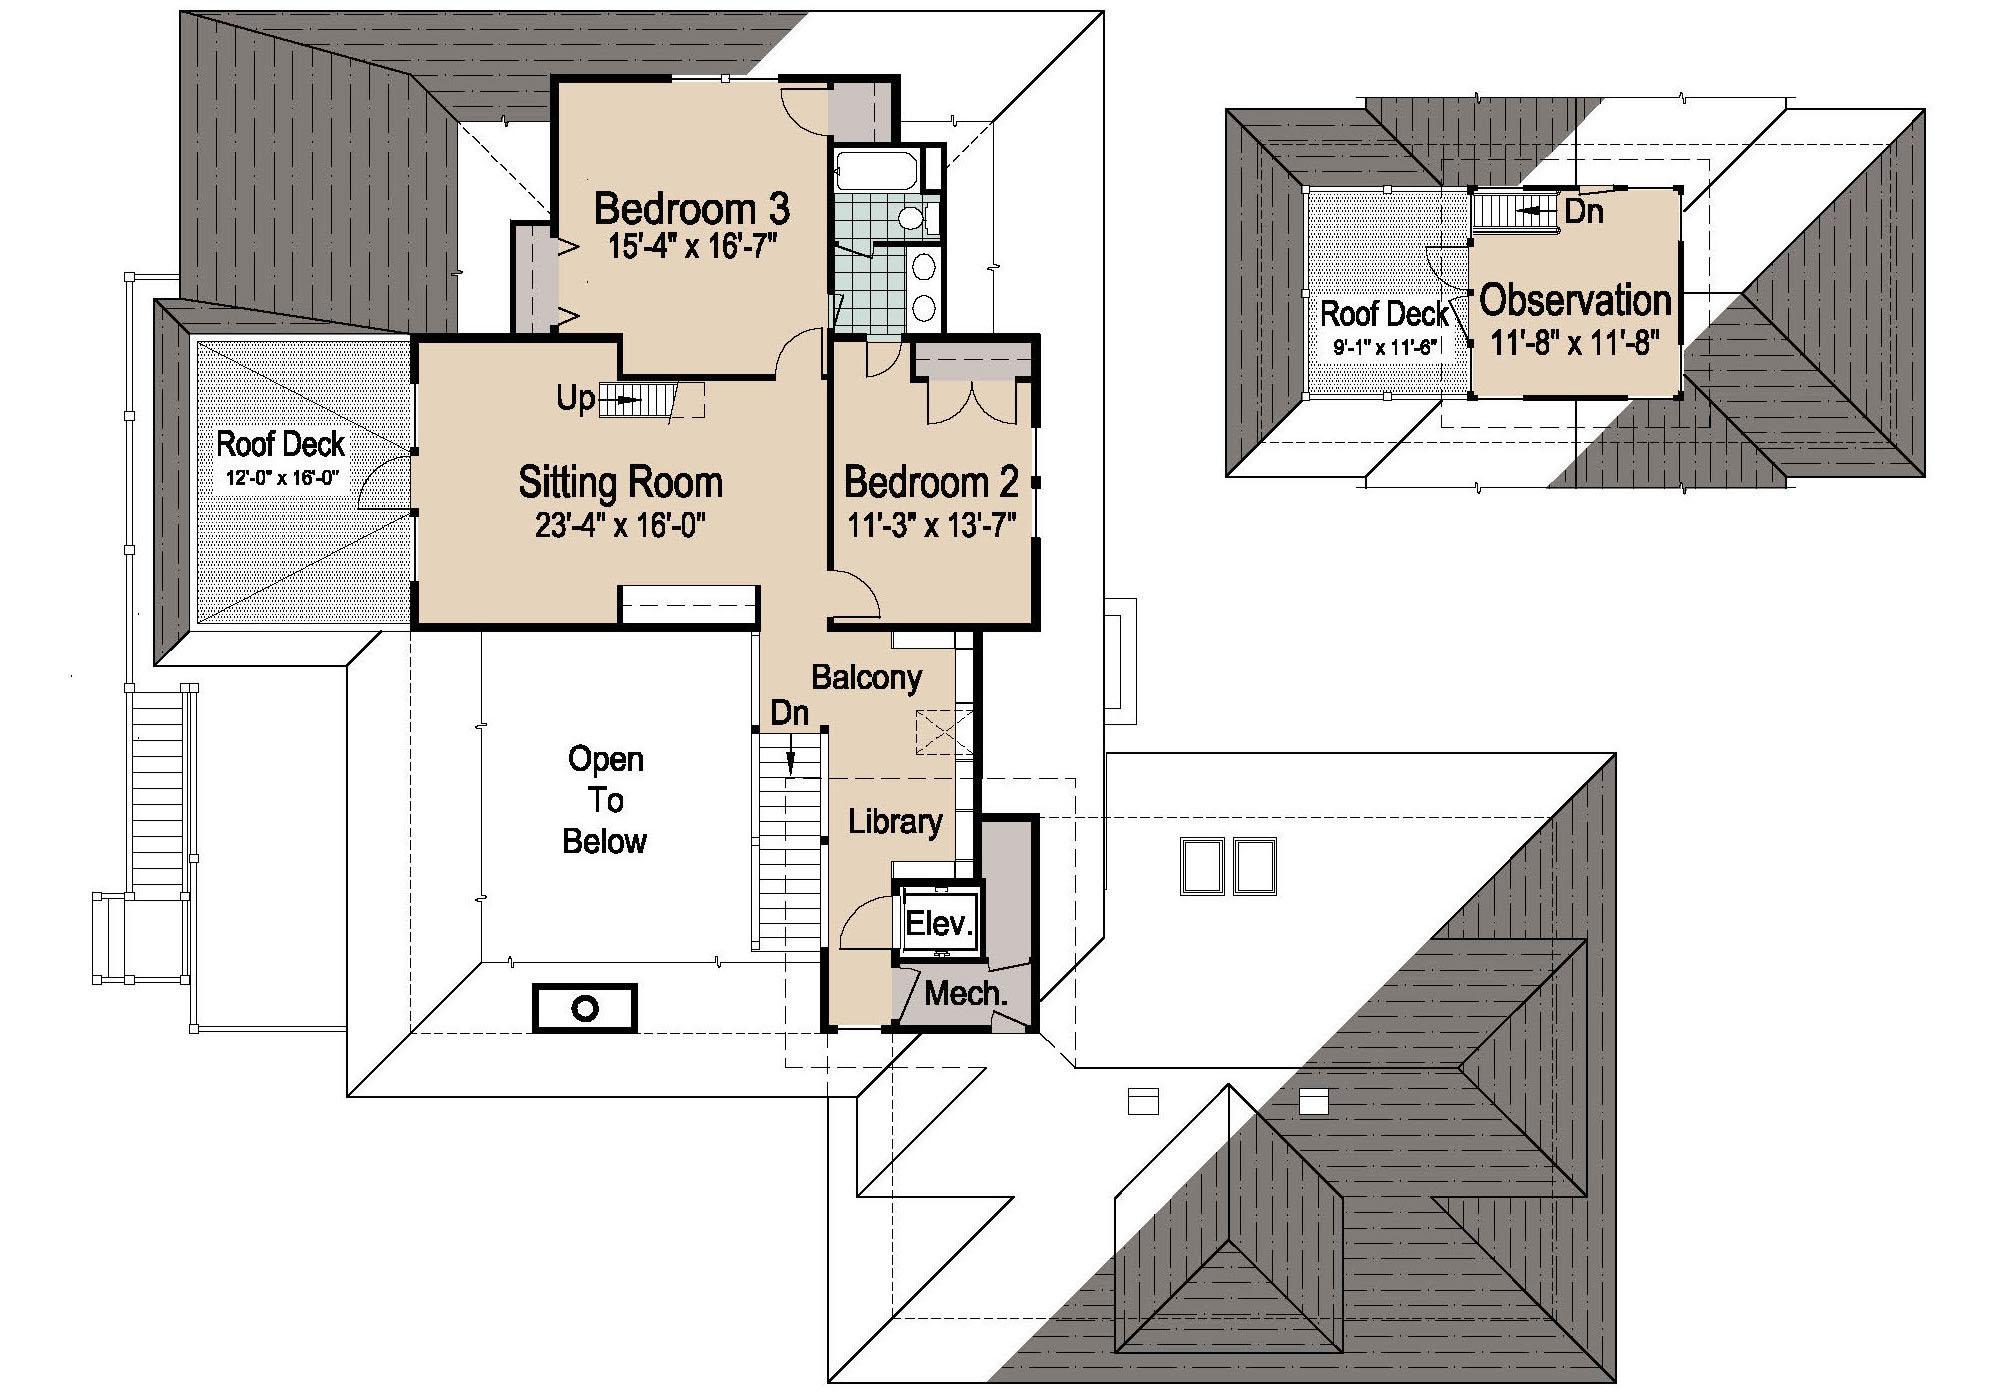 Piling house plans with elevators escortsea for Piling foundation house plans